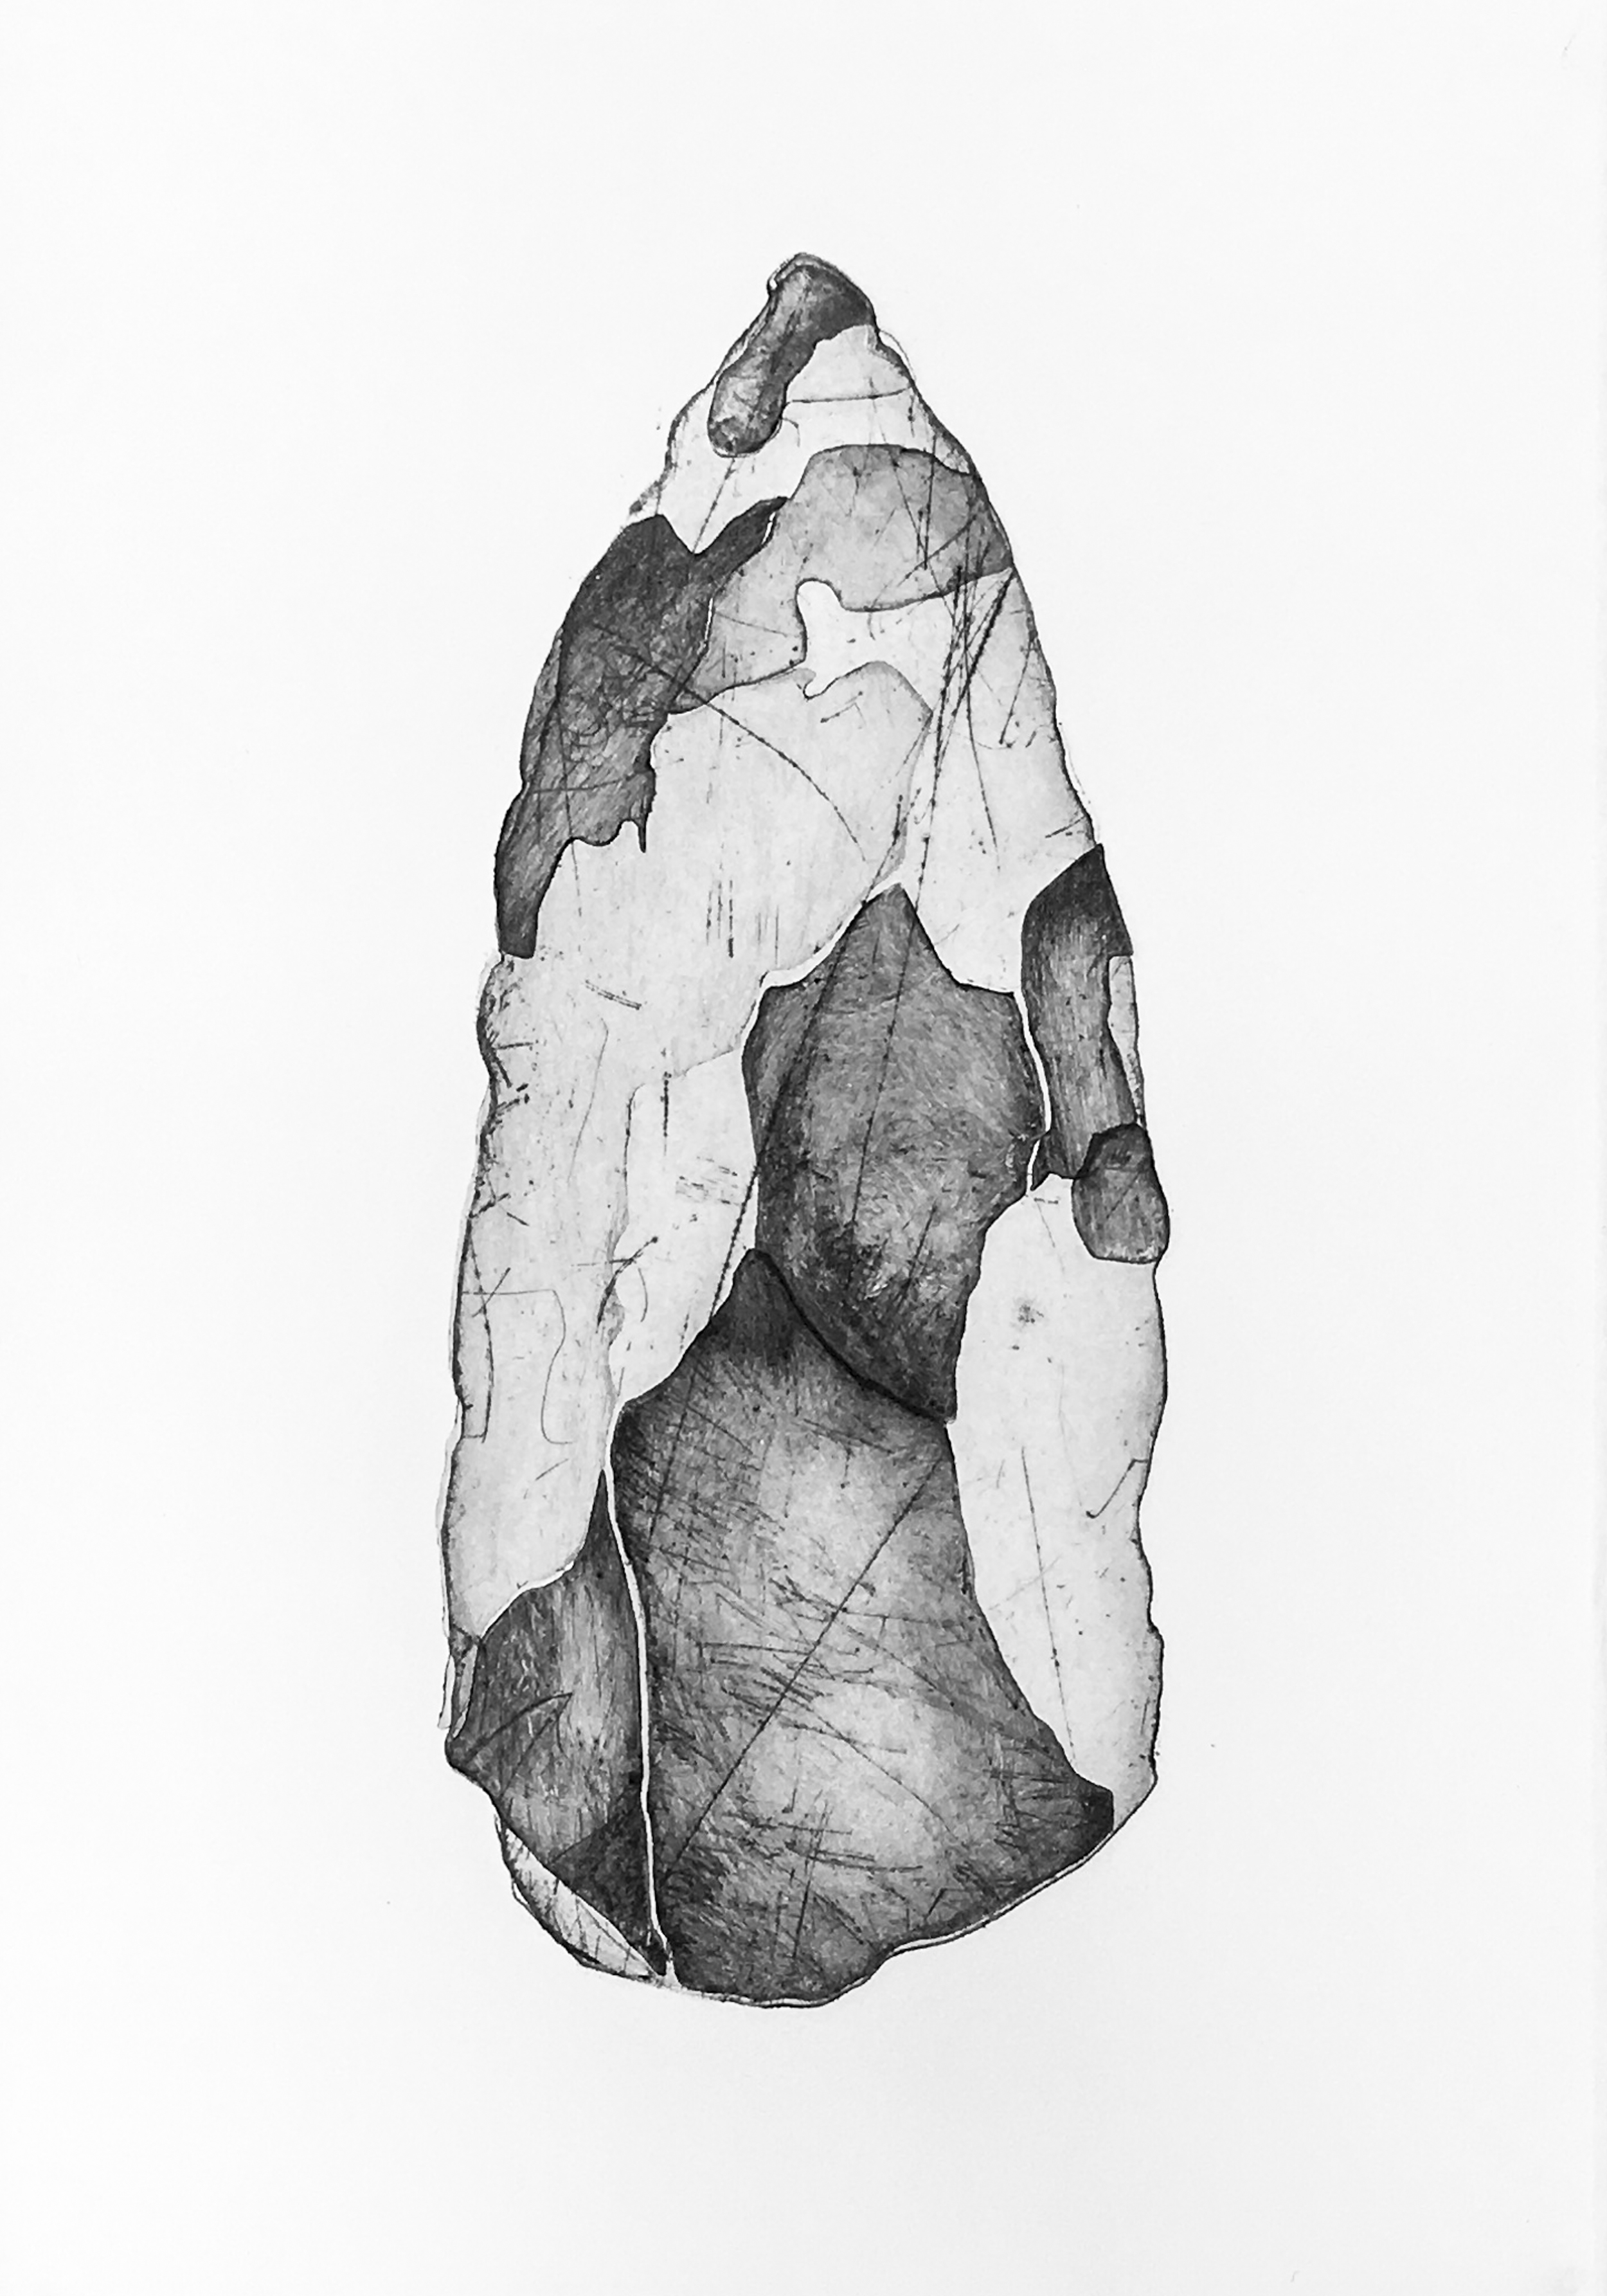 Copy of Worrorra Stone Tool, Vic Cox Collection